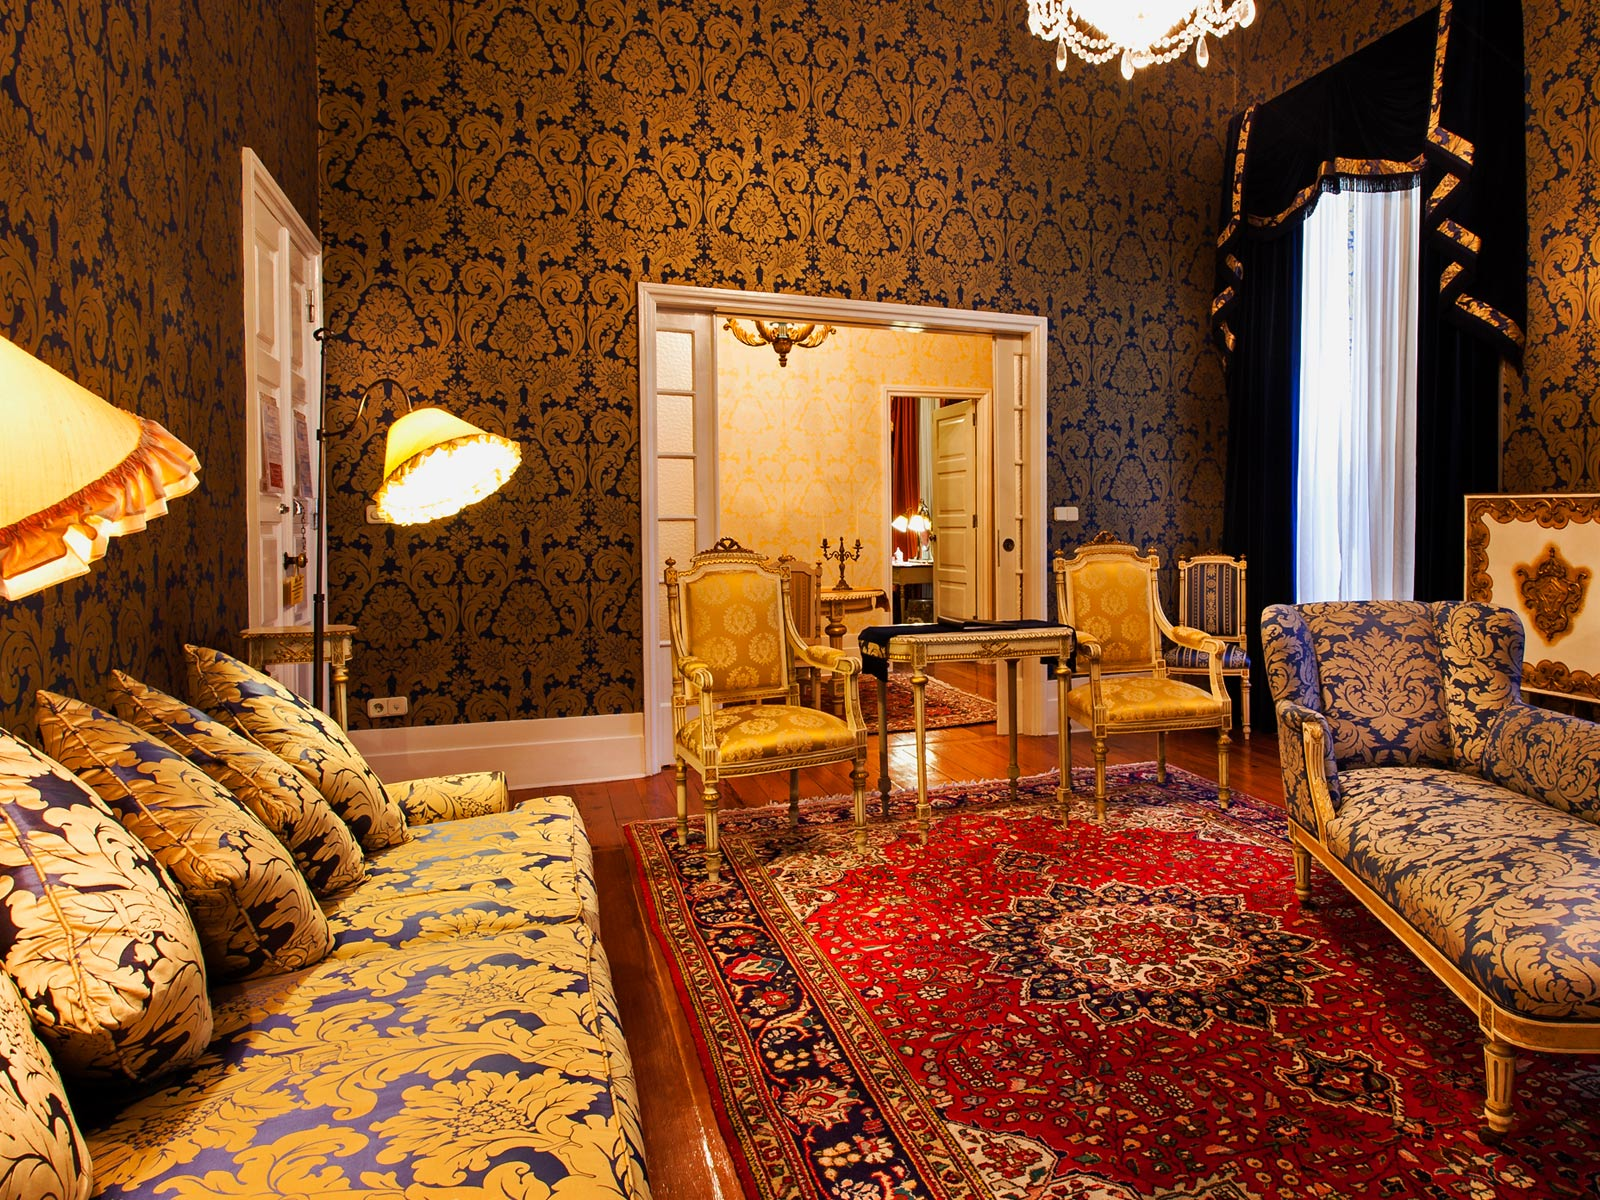 Best Hotels in Central Portugal hotels Best Hotels in Central Portugal suite real 4 hotel bussaco alexandre almeida